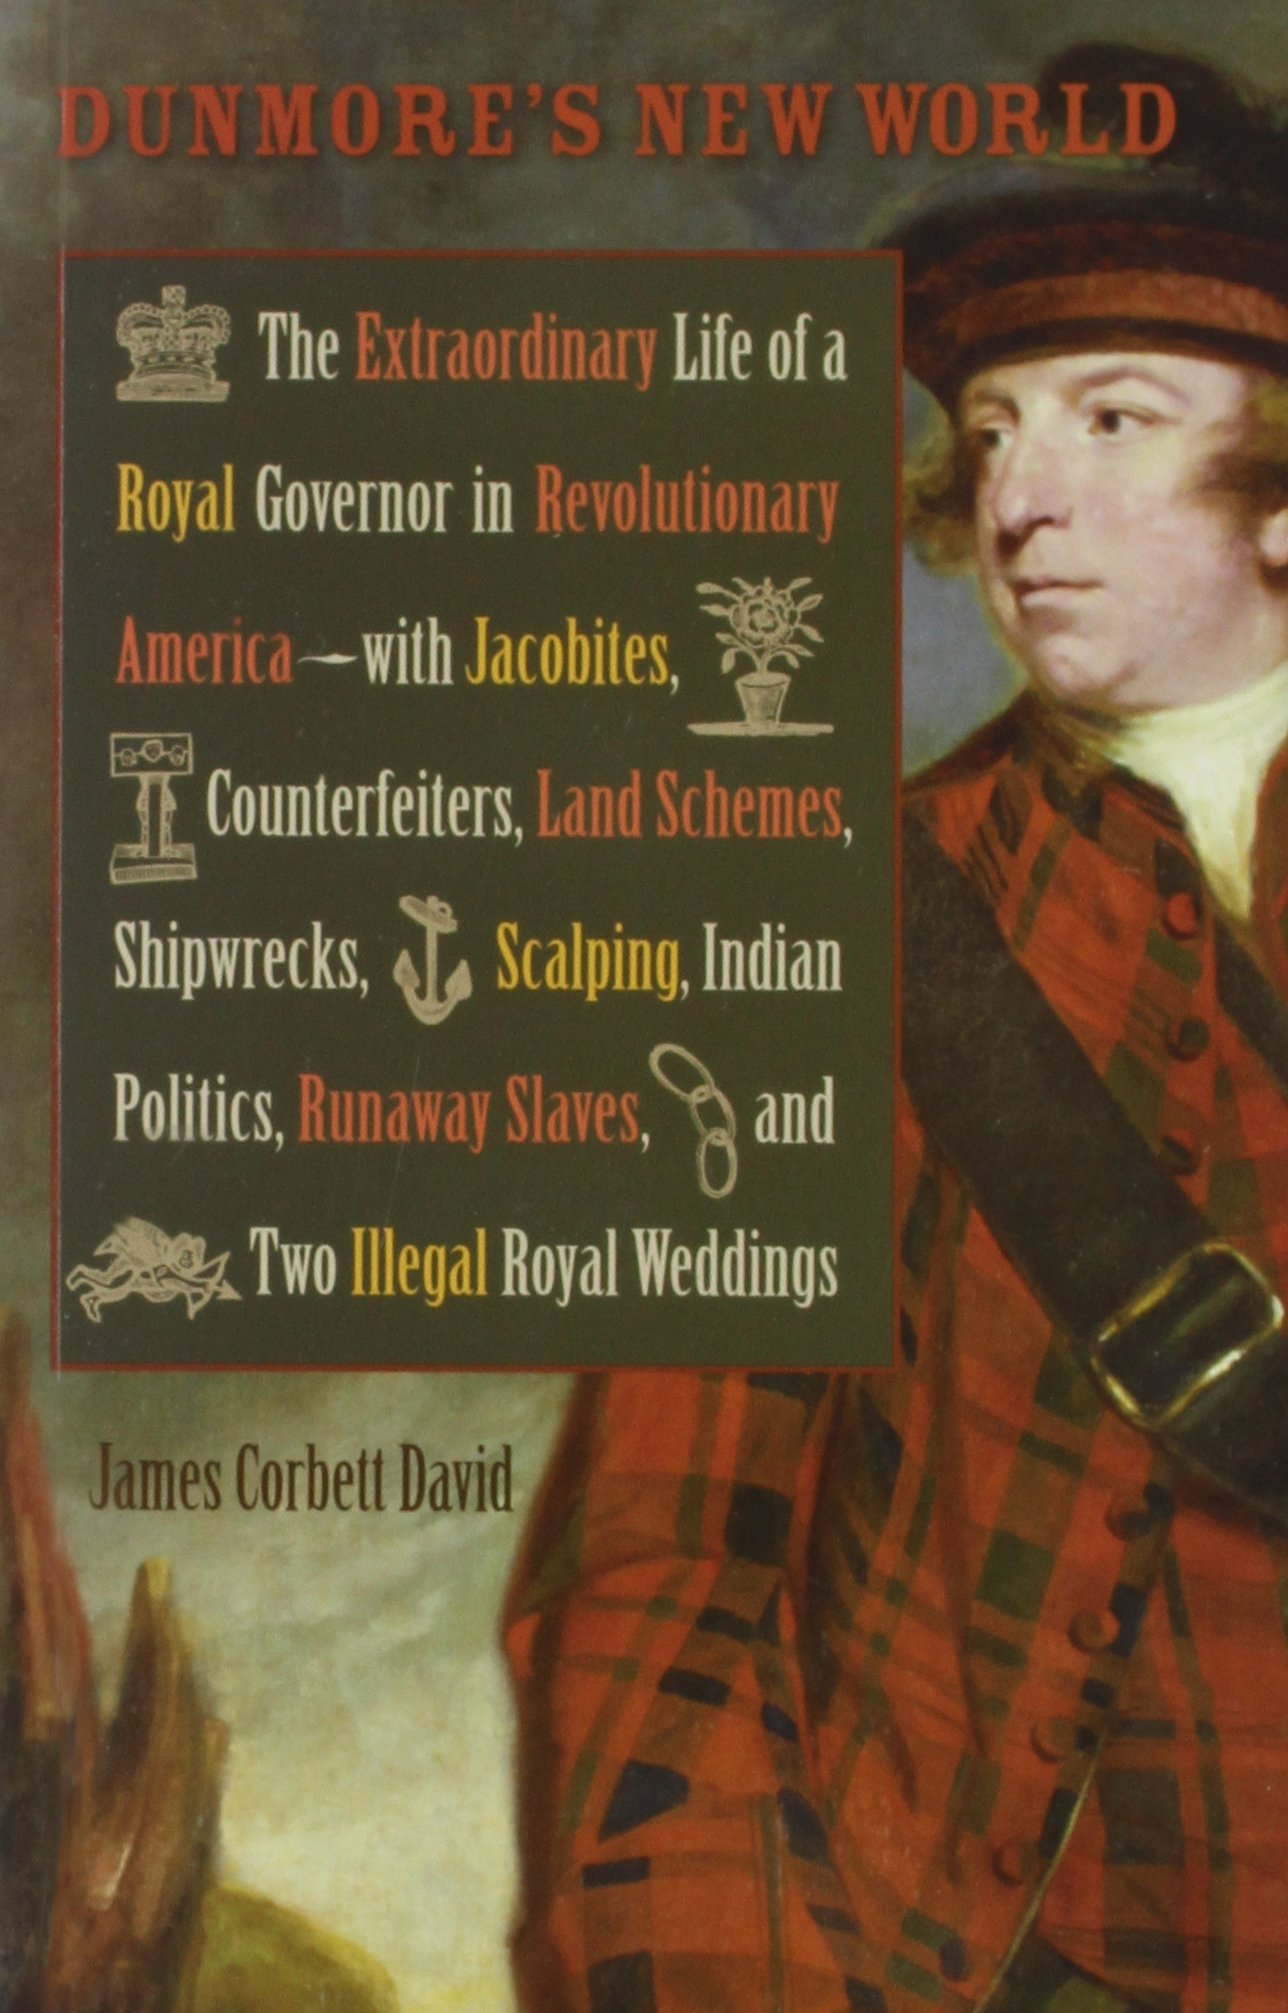 Dunmore's New World: The Extraordinary Life of a Royal Governor in Revolutionary America-with Jacobites, Counterfeiters, Land Schemes, Shipwrecks. Royal Weddings (Early American Histories)